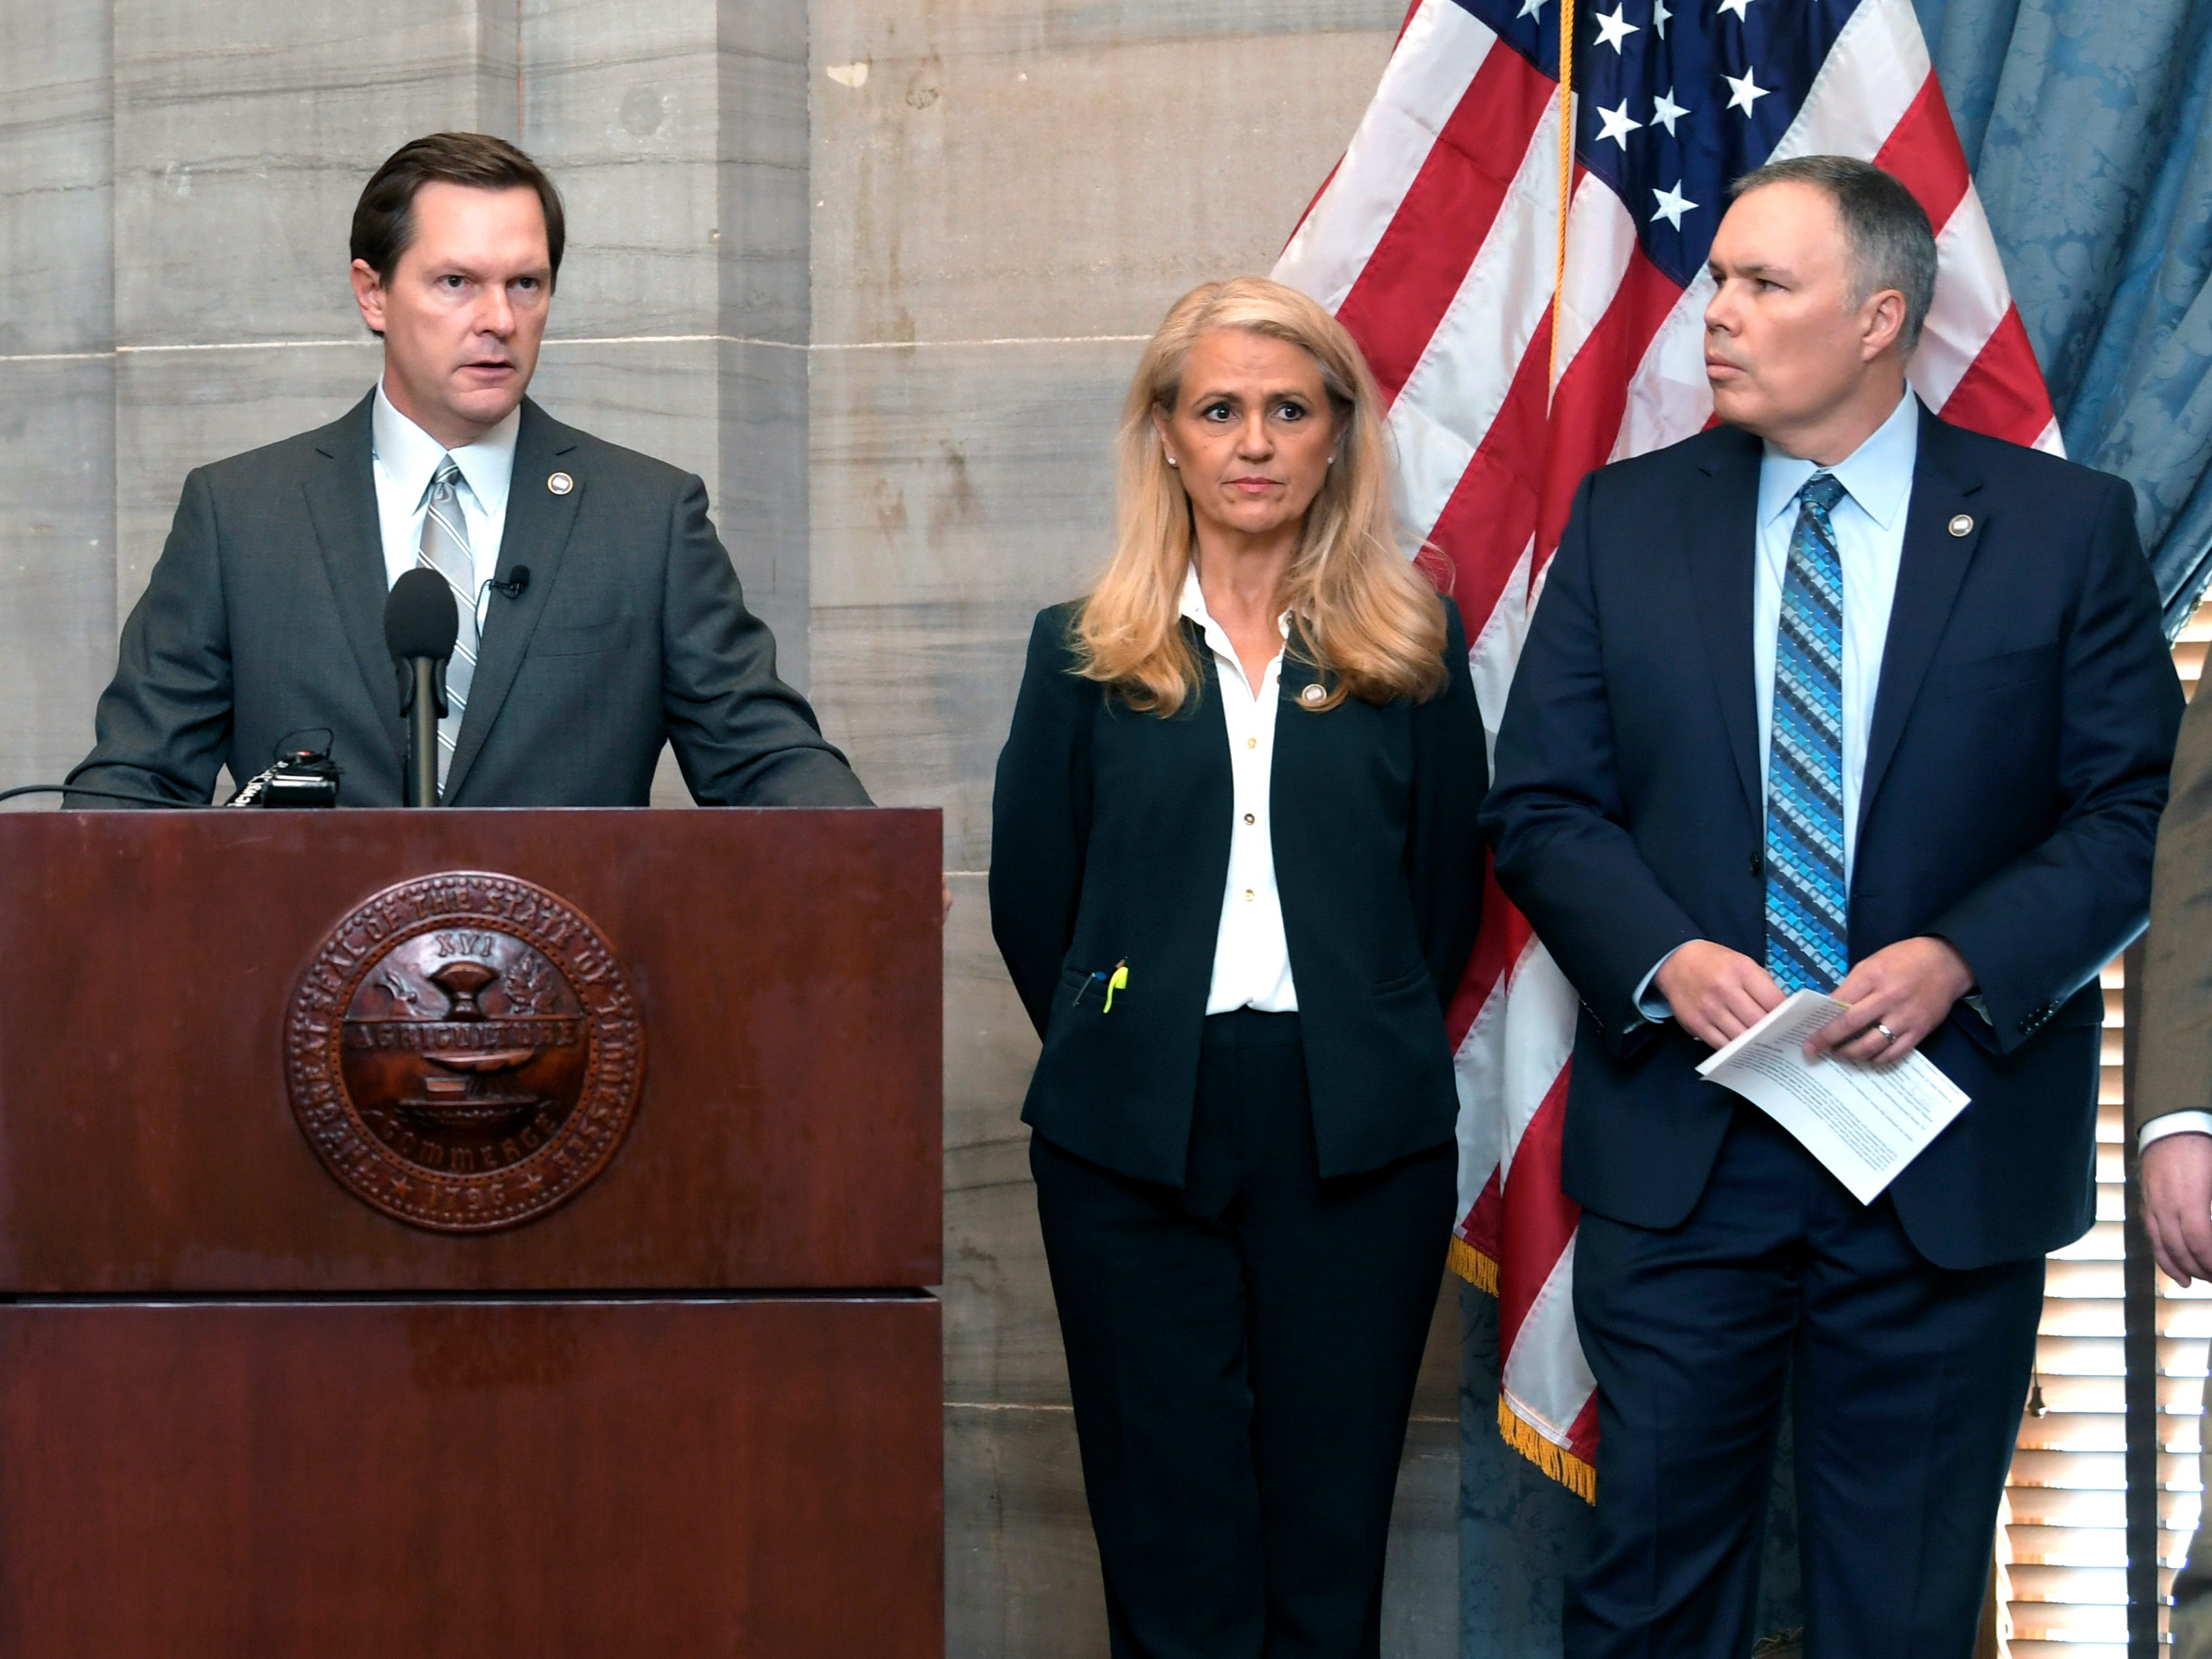 House Republican Cameron Sexton,left, and others lawmakers hold press conference inside the Supreme Court chambers of the state Capitol in Nashville on Thursday, Feb. 2, 2019 regarding health care.